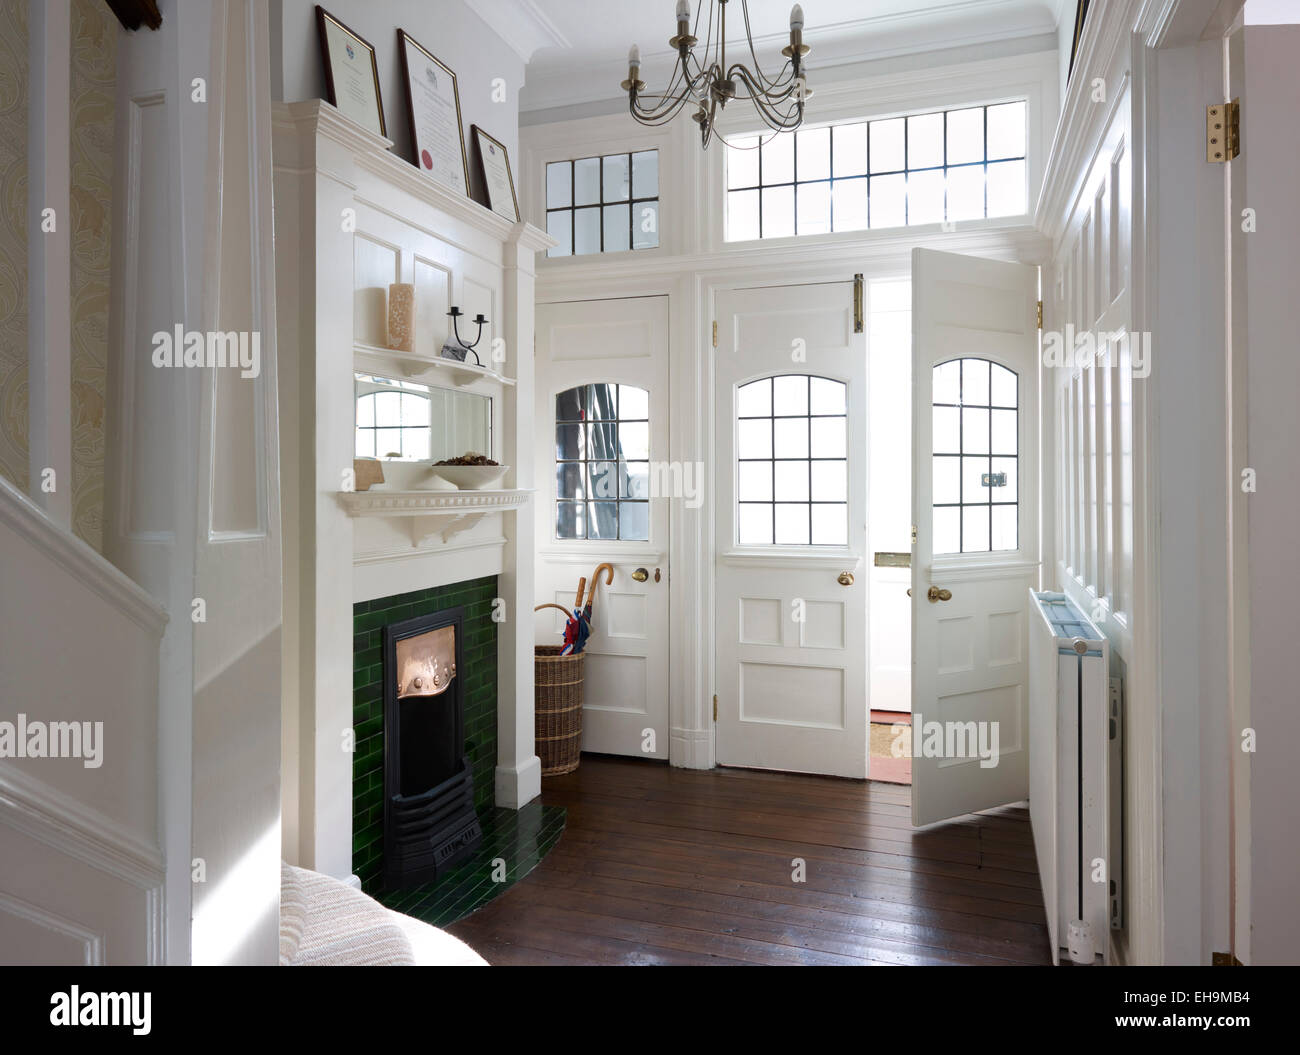 White entrance hall with green fireplace and dark wood flooring, Edwardian, residential house, Kingsmead, UK - Stock Image